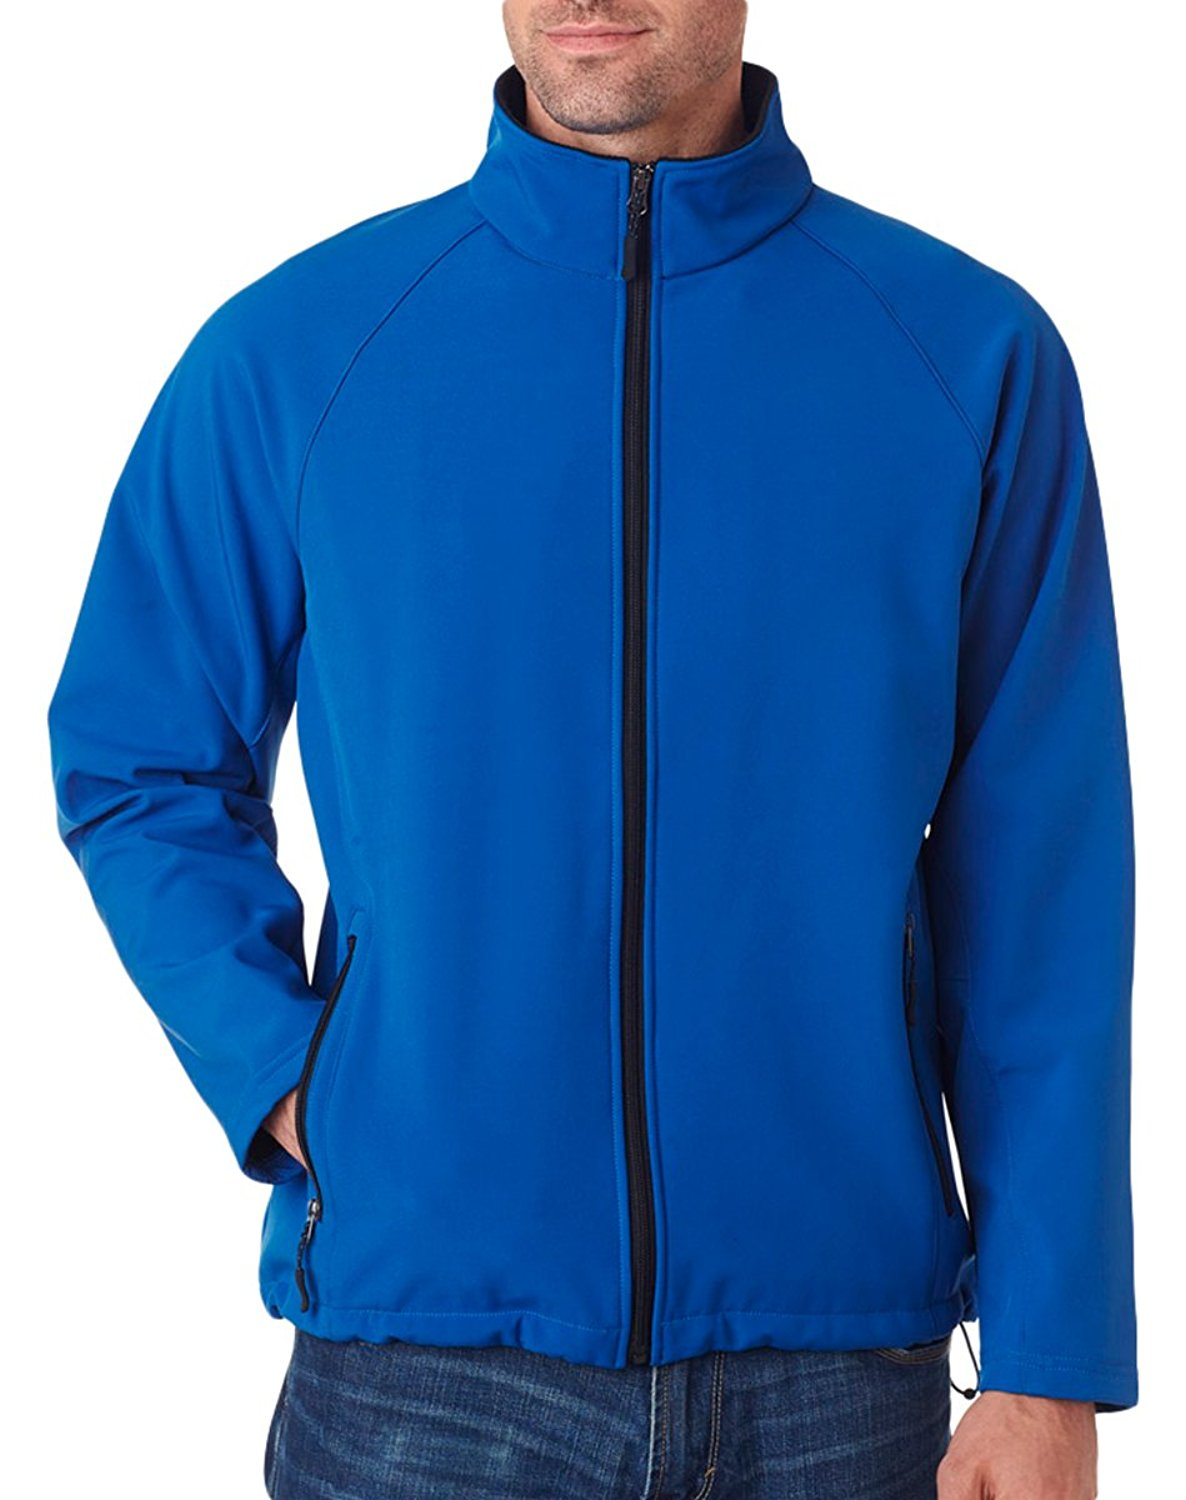 UltraClub Men's Wind Resistant Soft Shell Zipper Jacket, Medium, Classic Blue